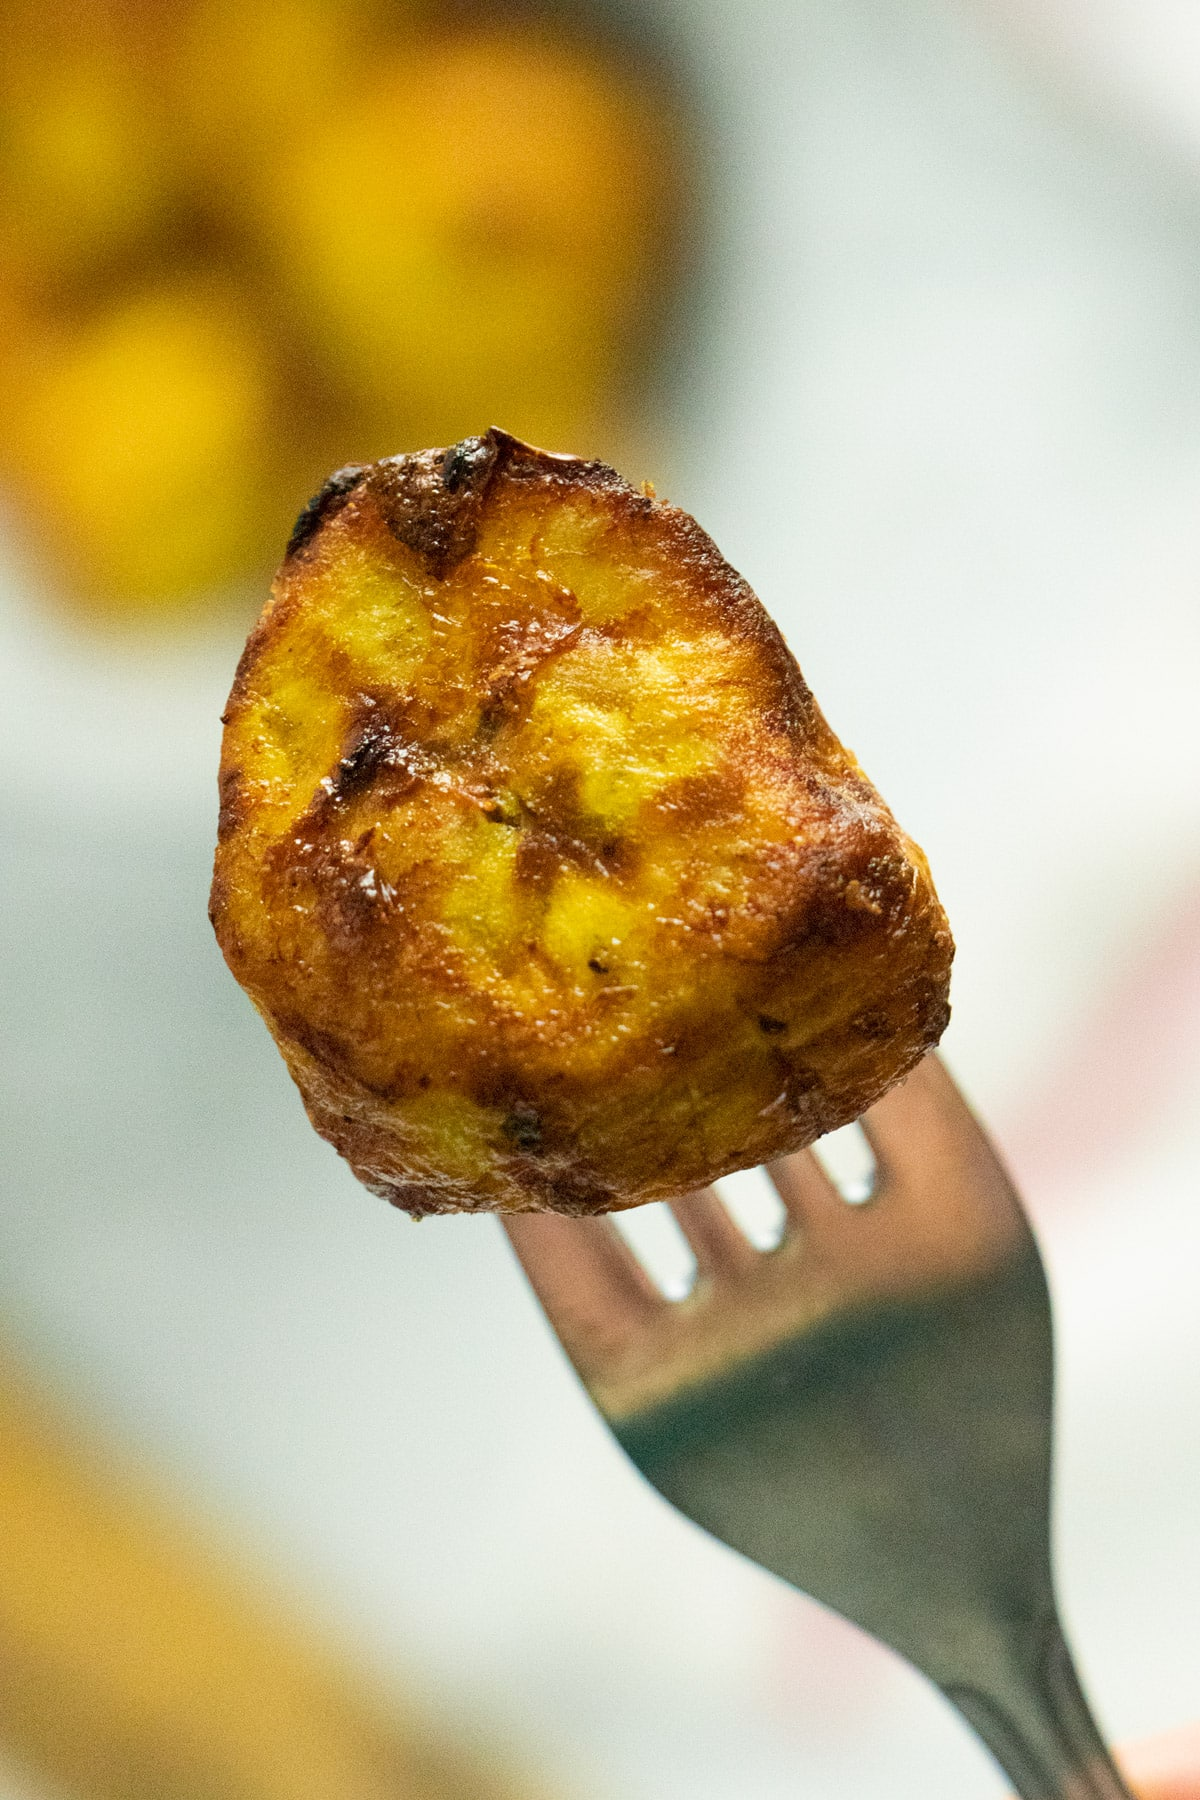 close-up of a cooked plantain on a fork